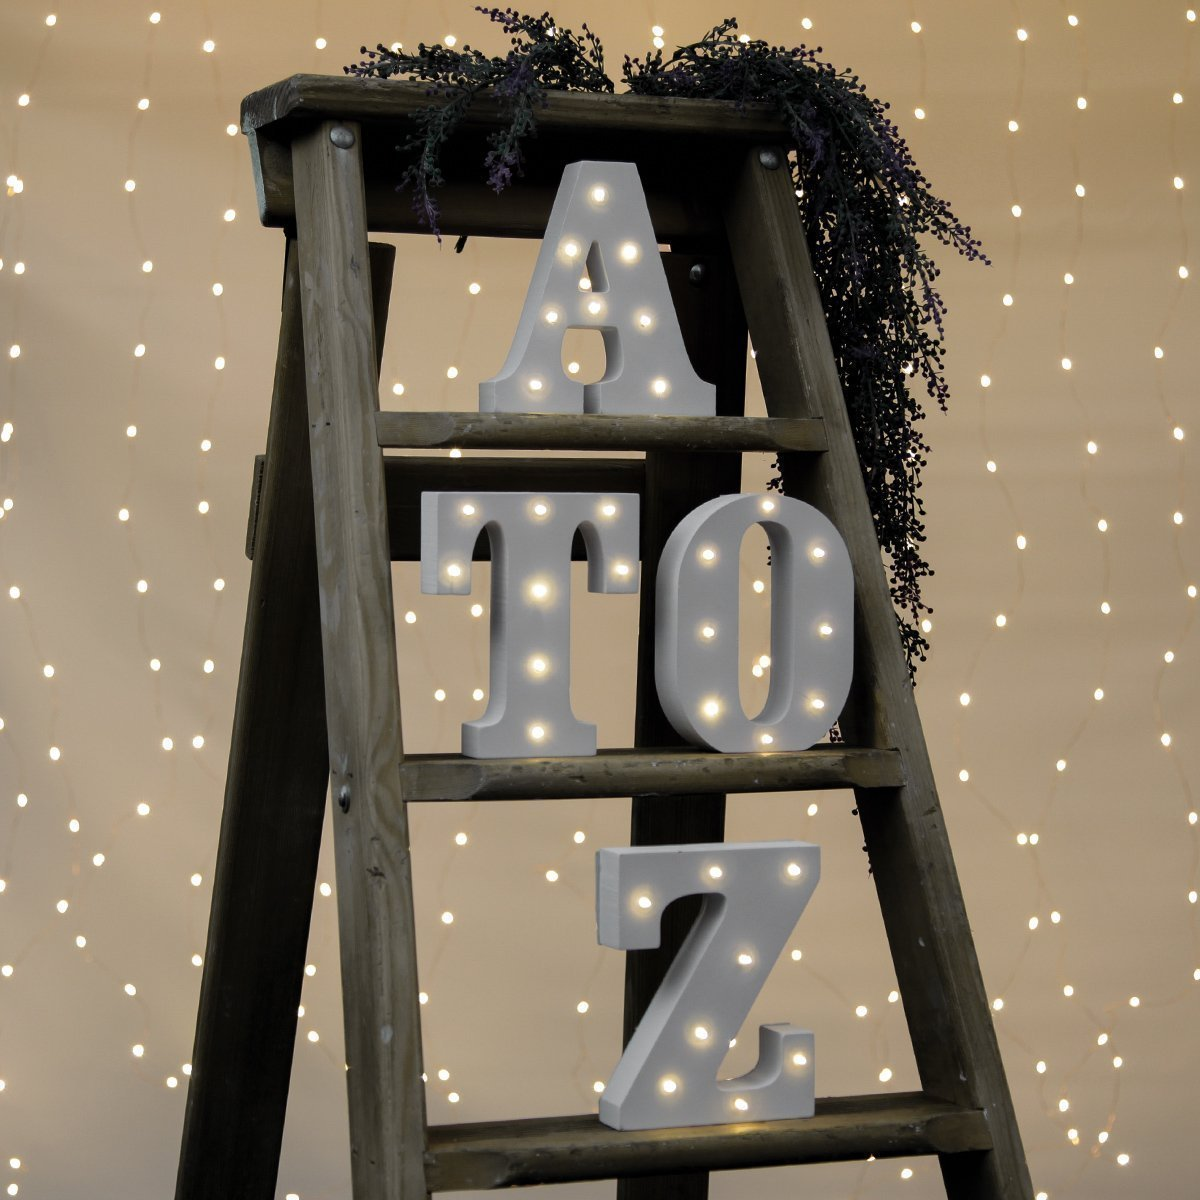 Kerong DIY LED Light up Wooden Alphabet Marquee Letter Lights for Festival Decorative Home Party Wedding Scene Holiday Birthday Christmas Valentine,Battery Operated Warm White (T) by Kerong (Image #5)